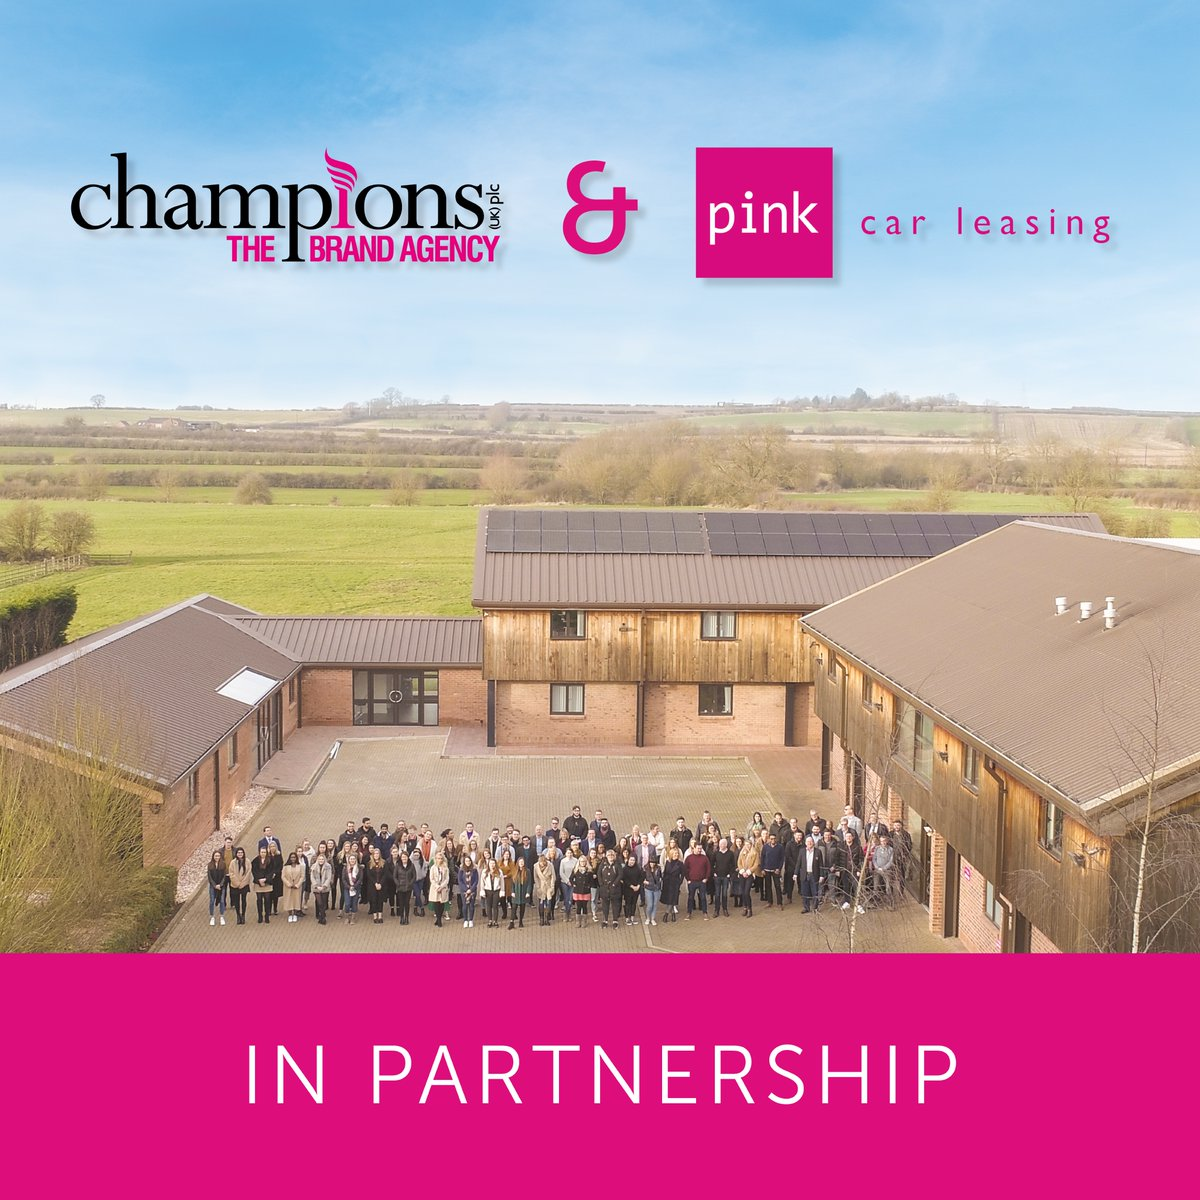 We are pleased to announce our partnership with @ChampionsUKplc! This is a great opportunity to harness our respective strengths and capabilities - and we look forward to building our relationship over the coming months. 🌐 bit.ly/2WW4qgH